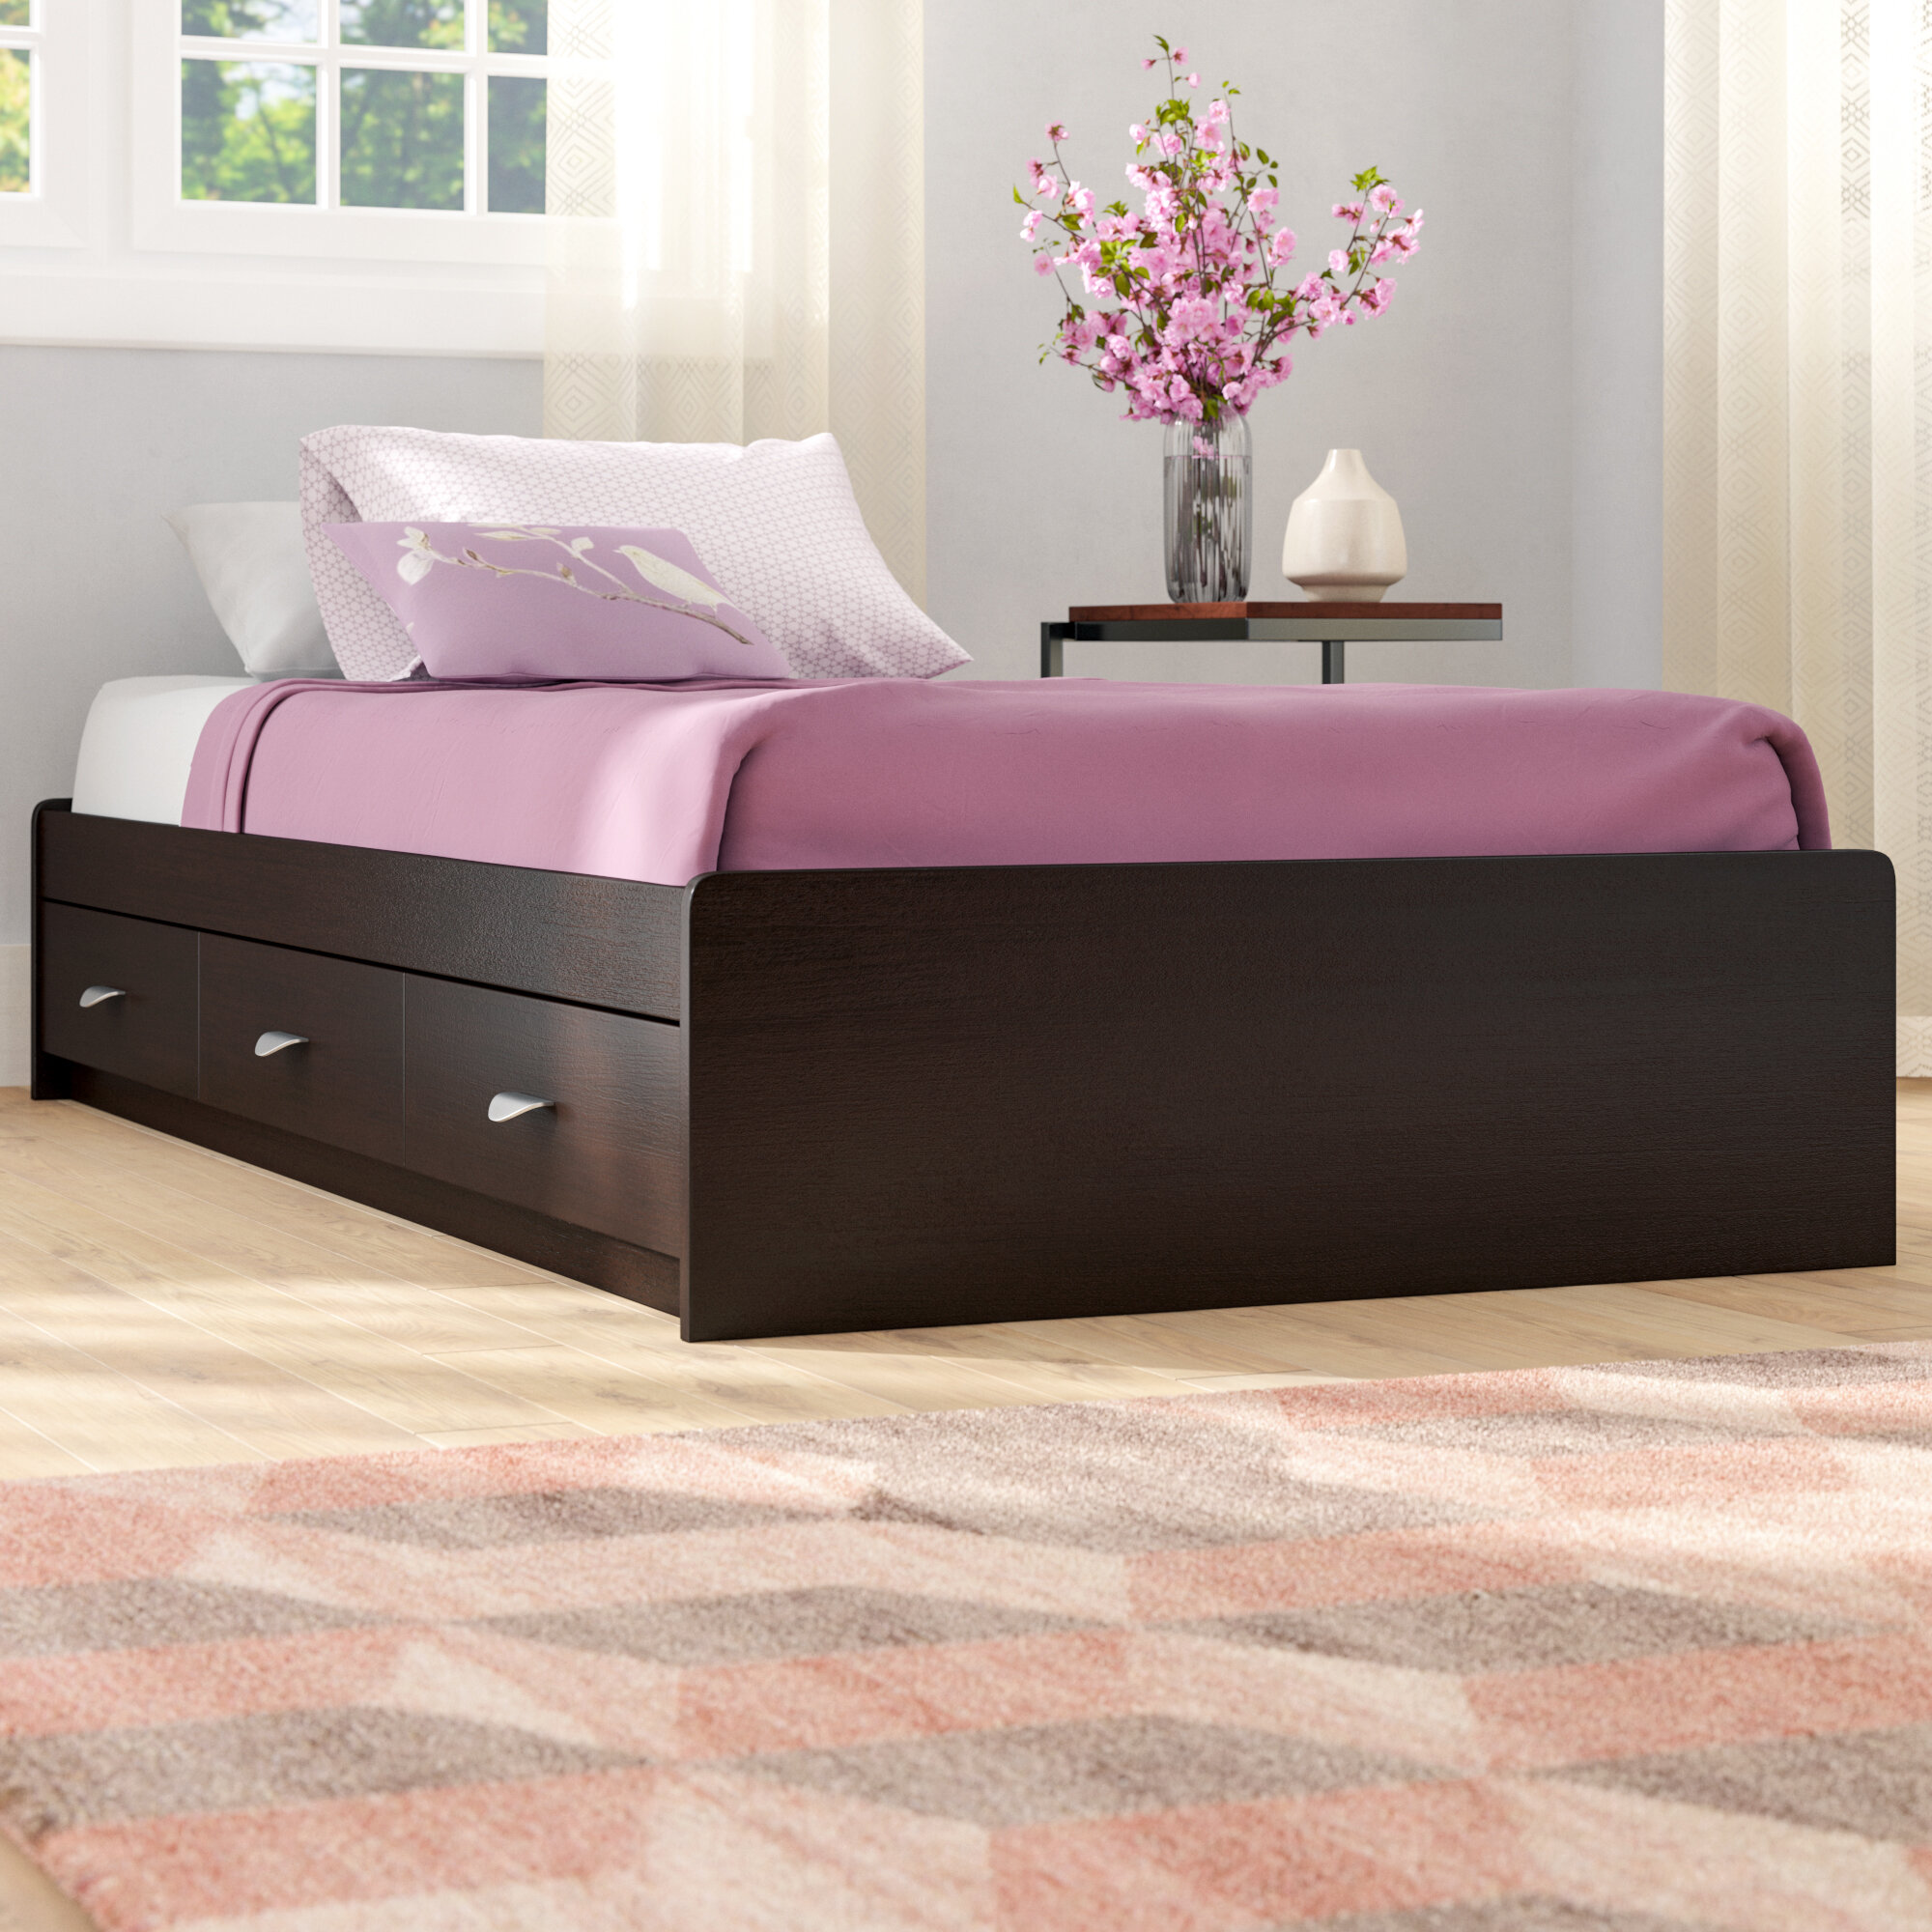 Storage Included Twin Beds You Ll Love Wayfair